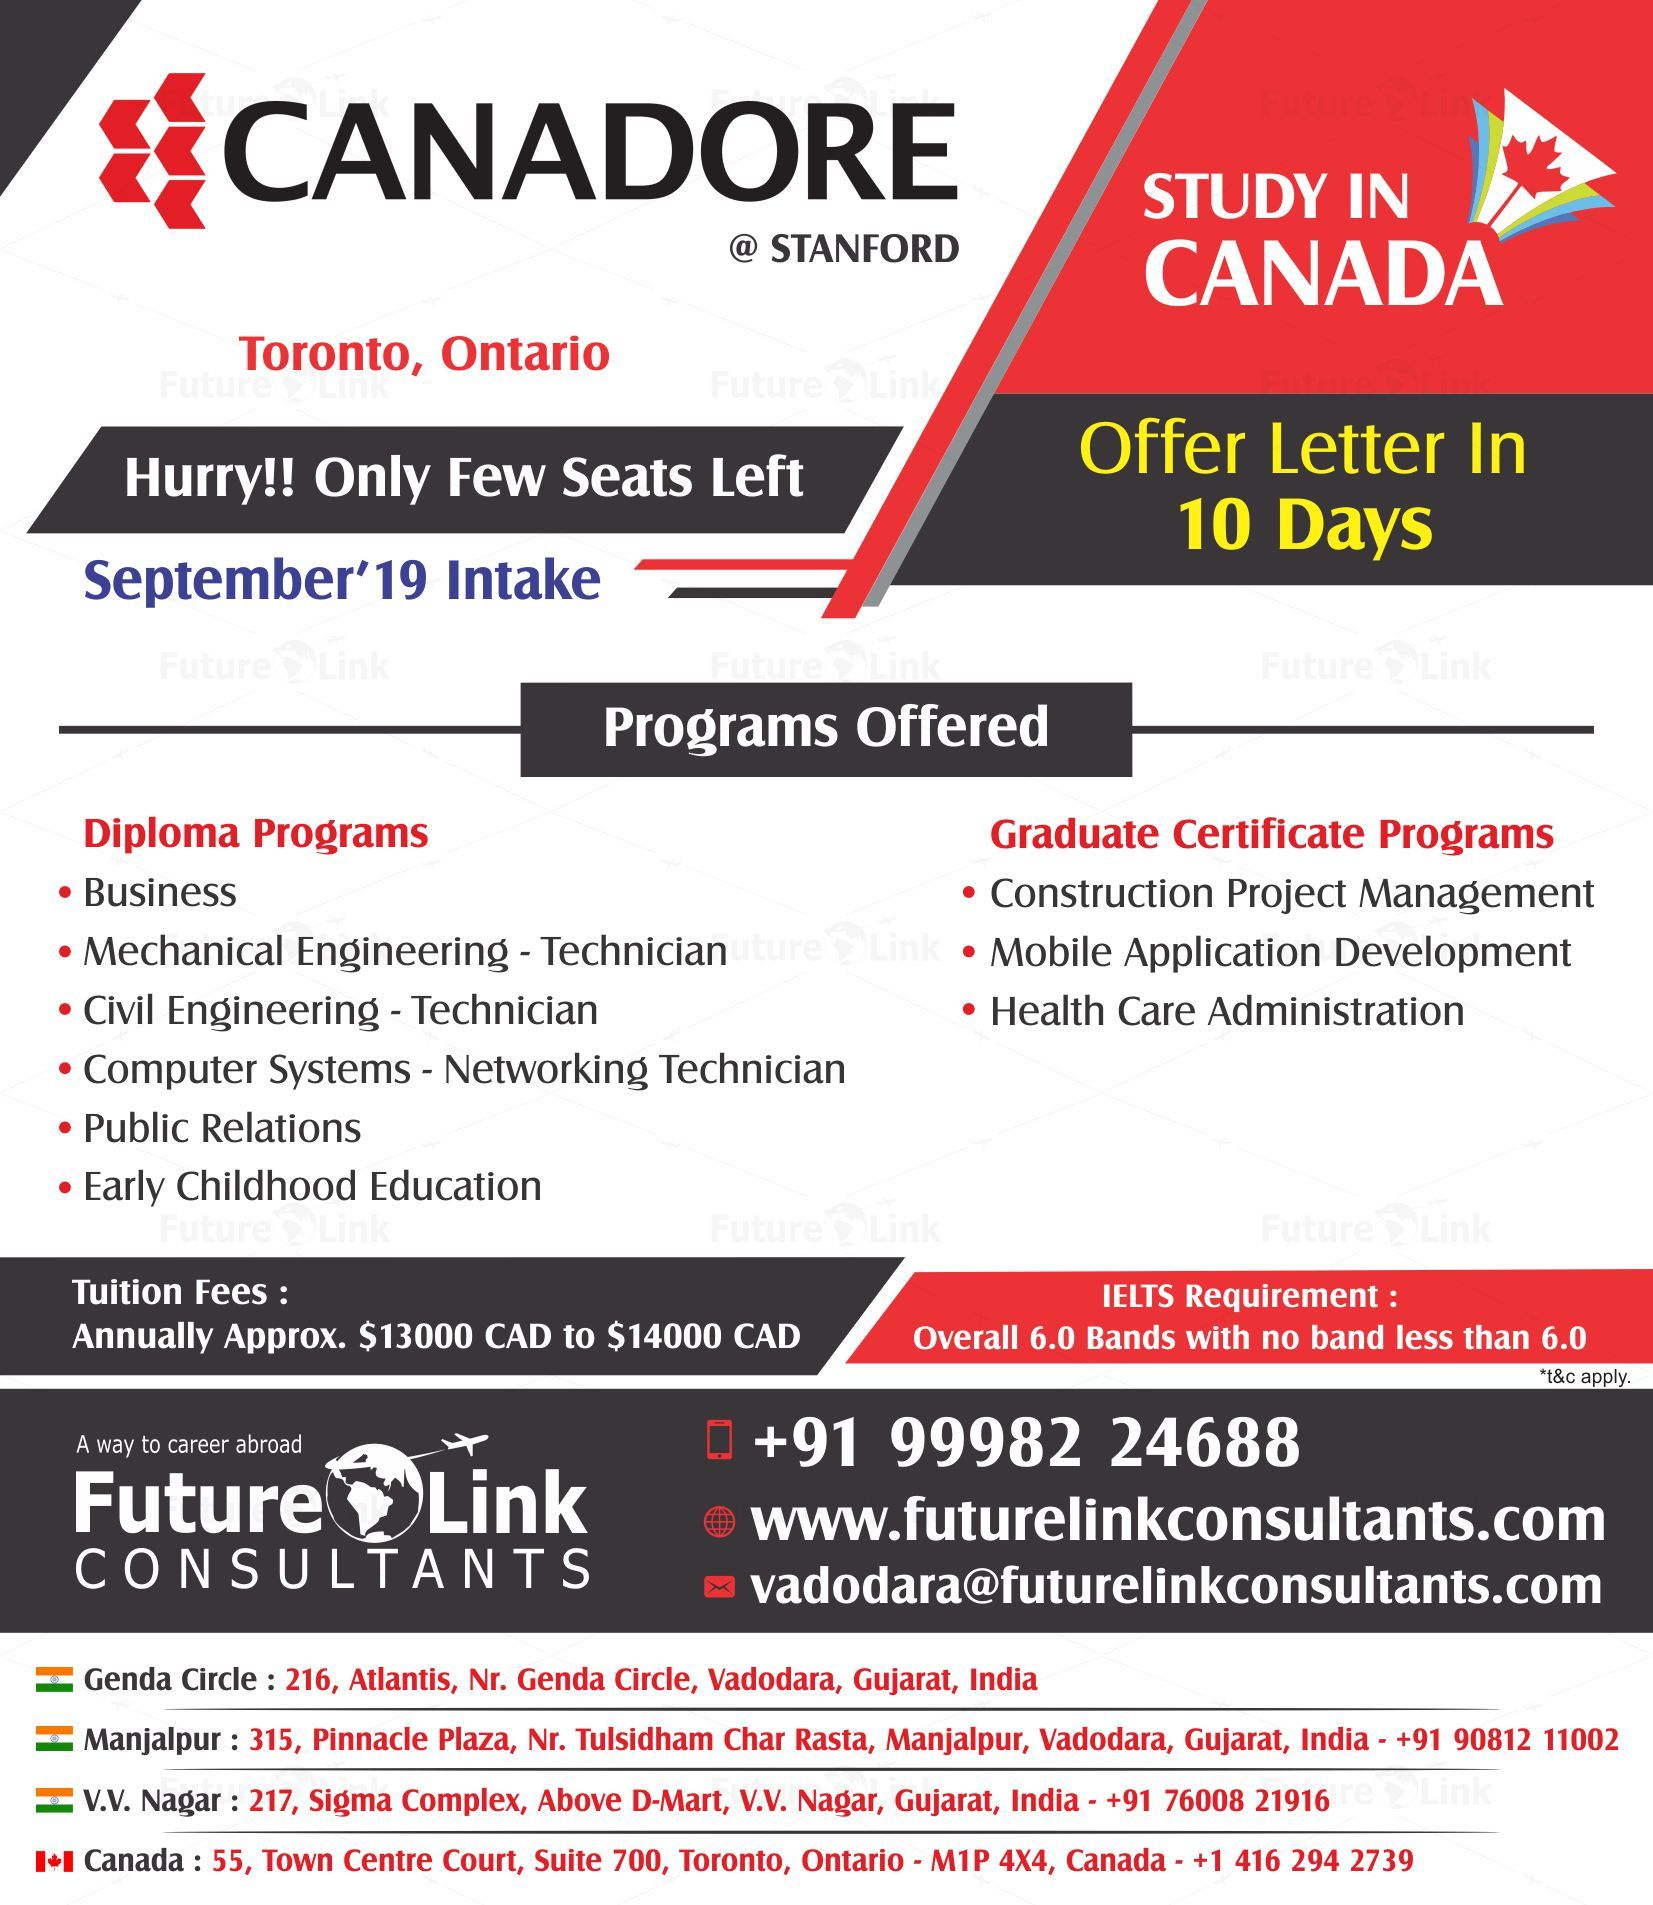 Obtain prolific education by studying in the Canadore